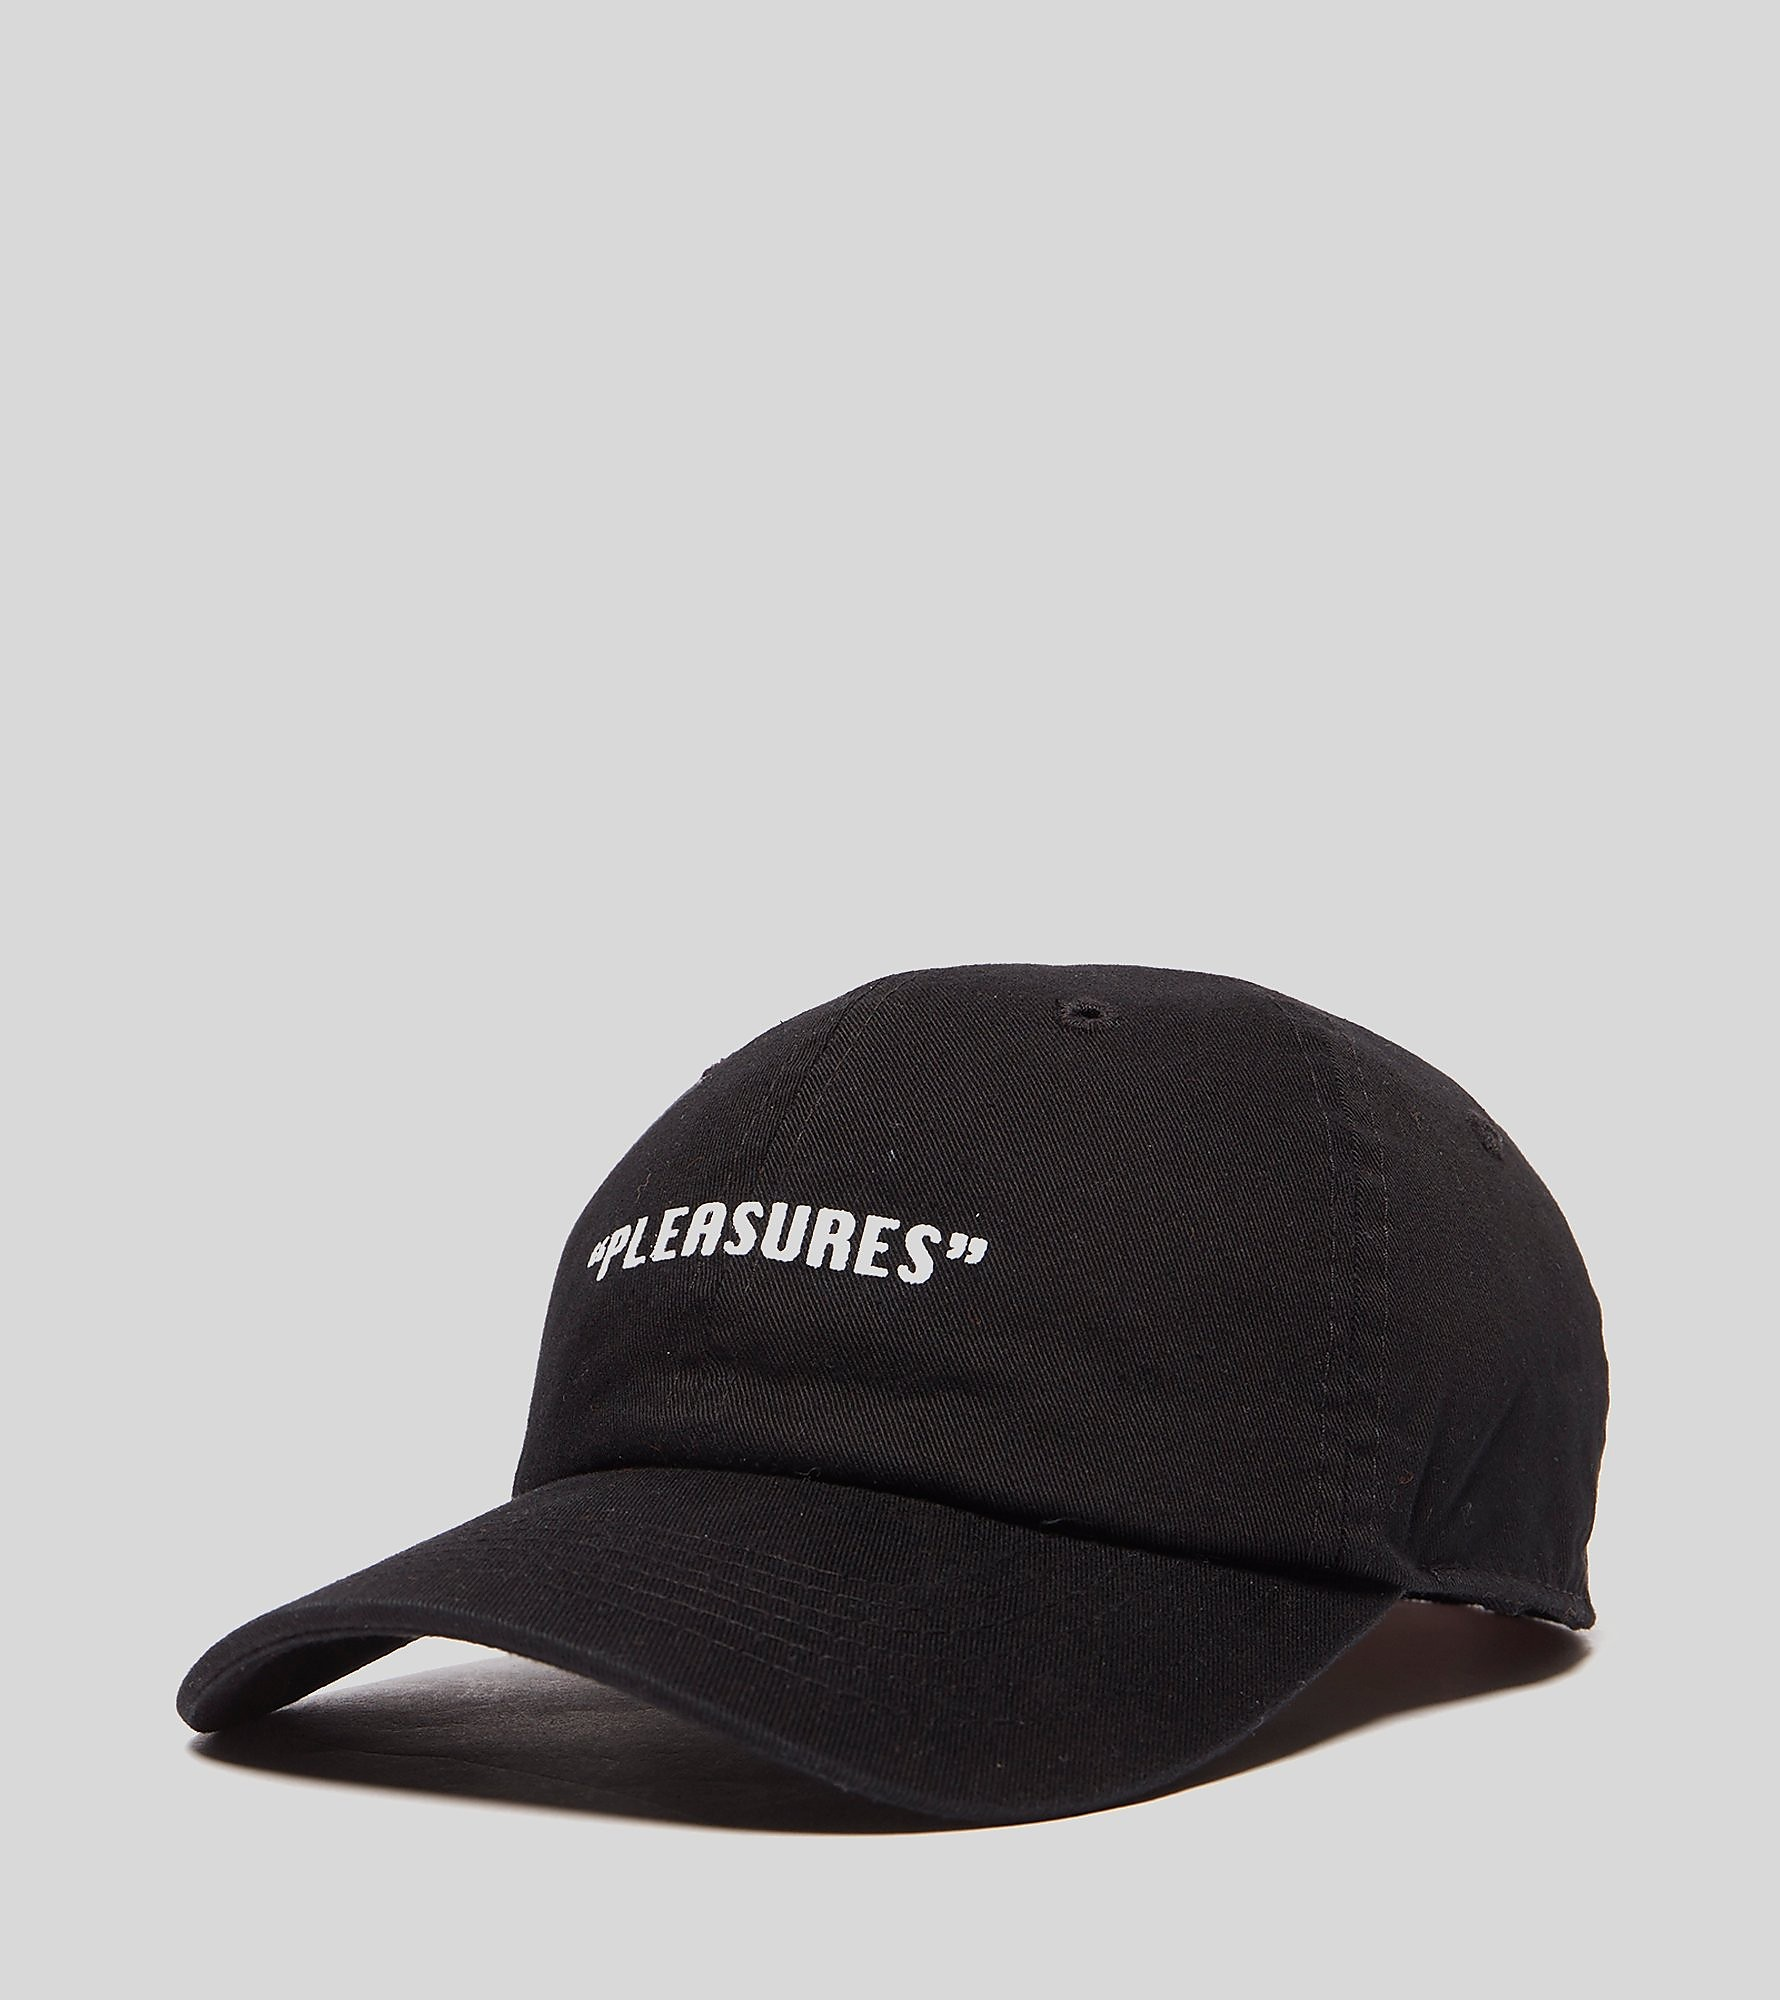 PLEASURES ART HOMESICK POLO CAP